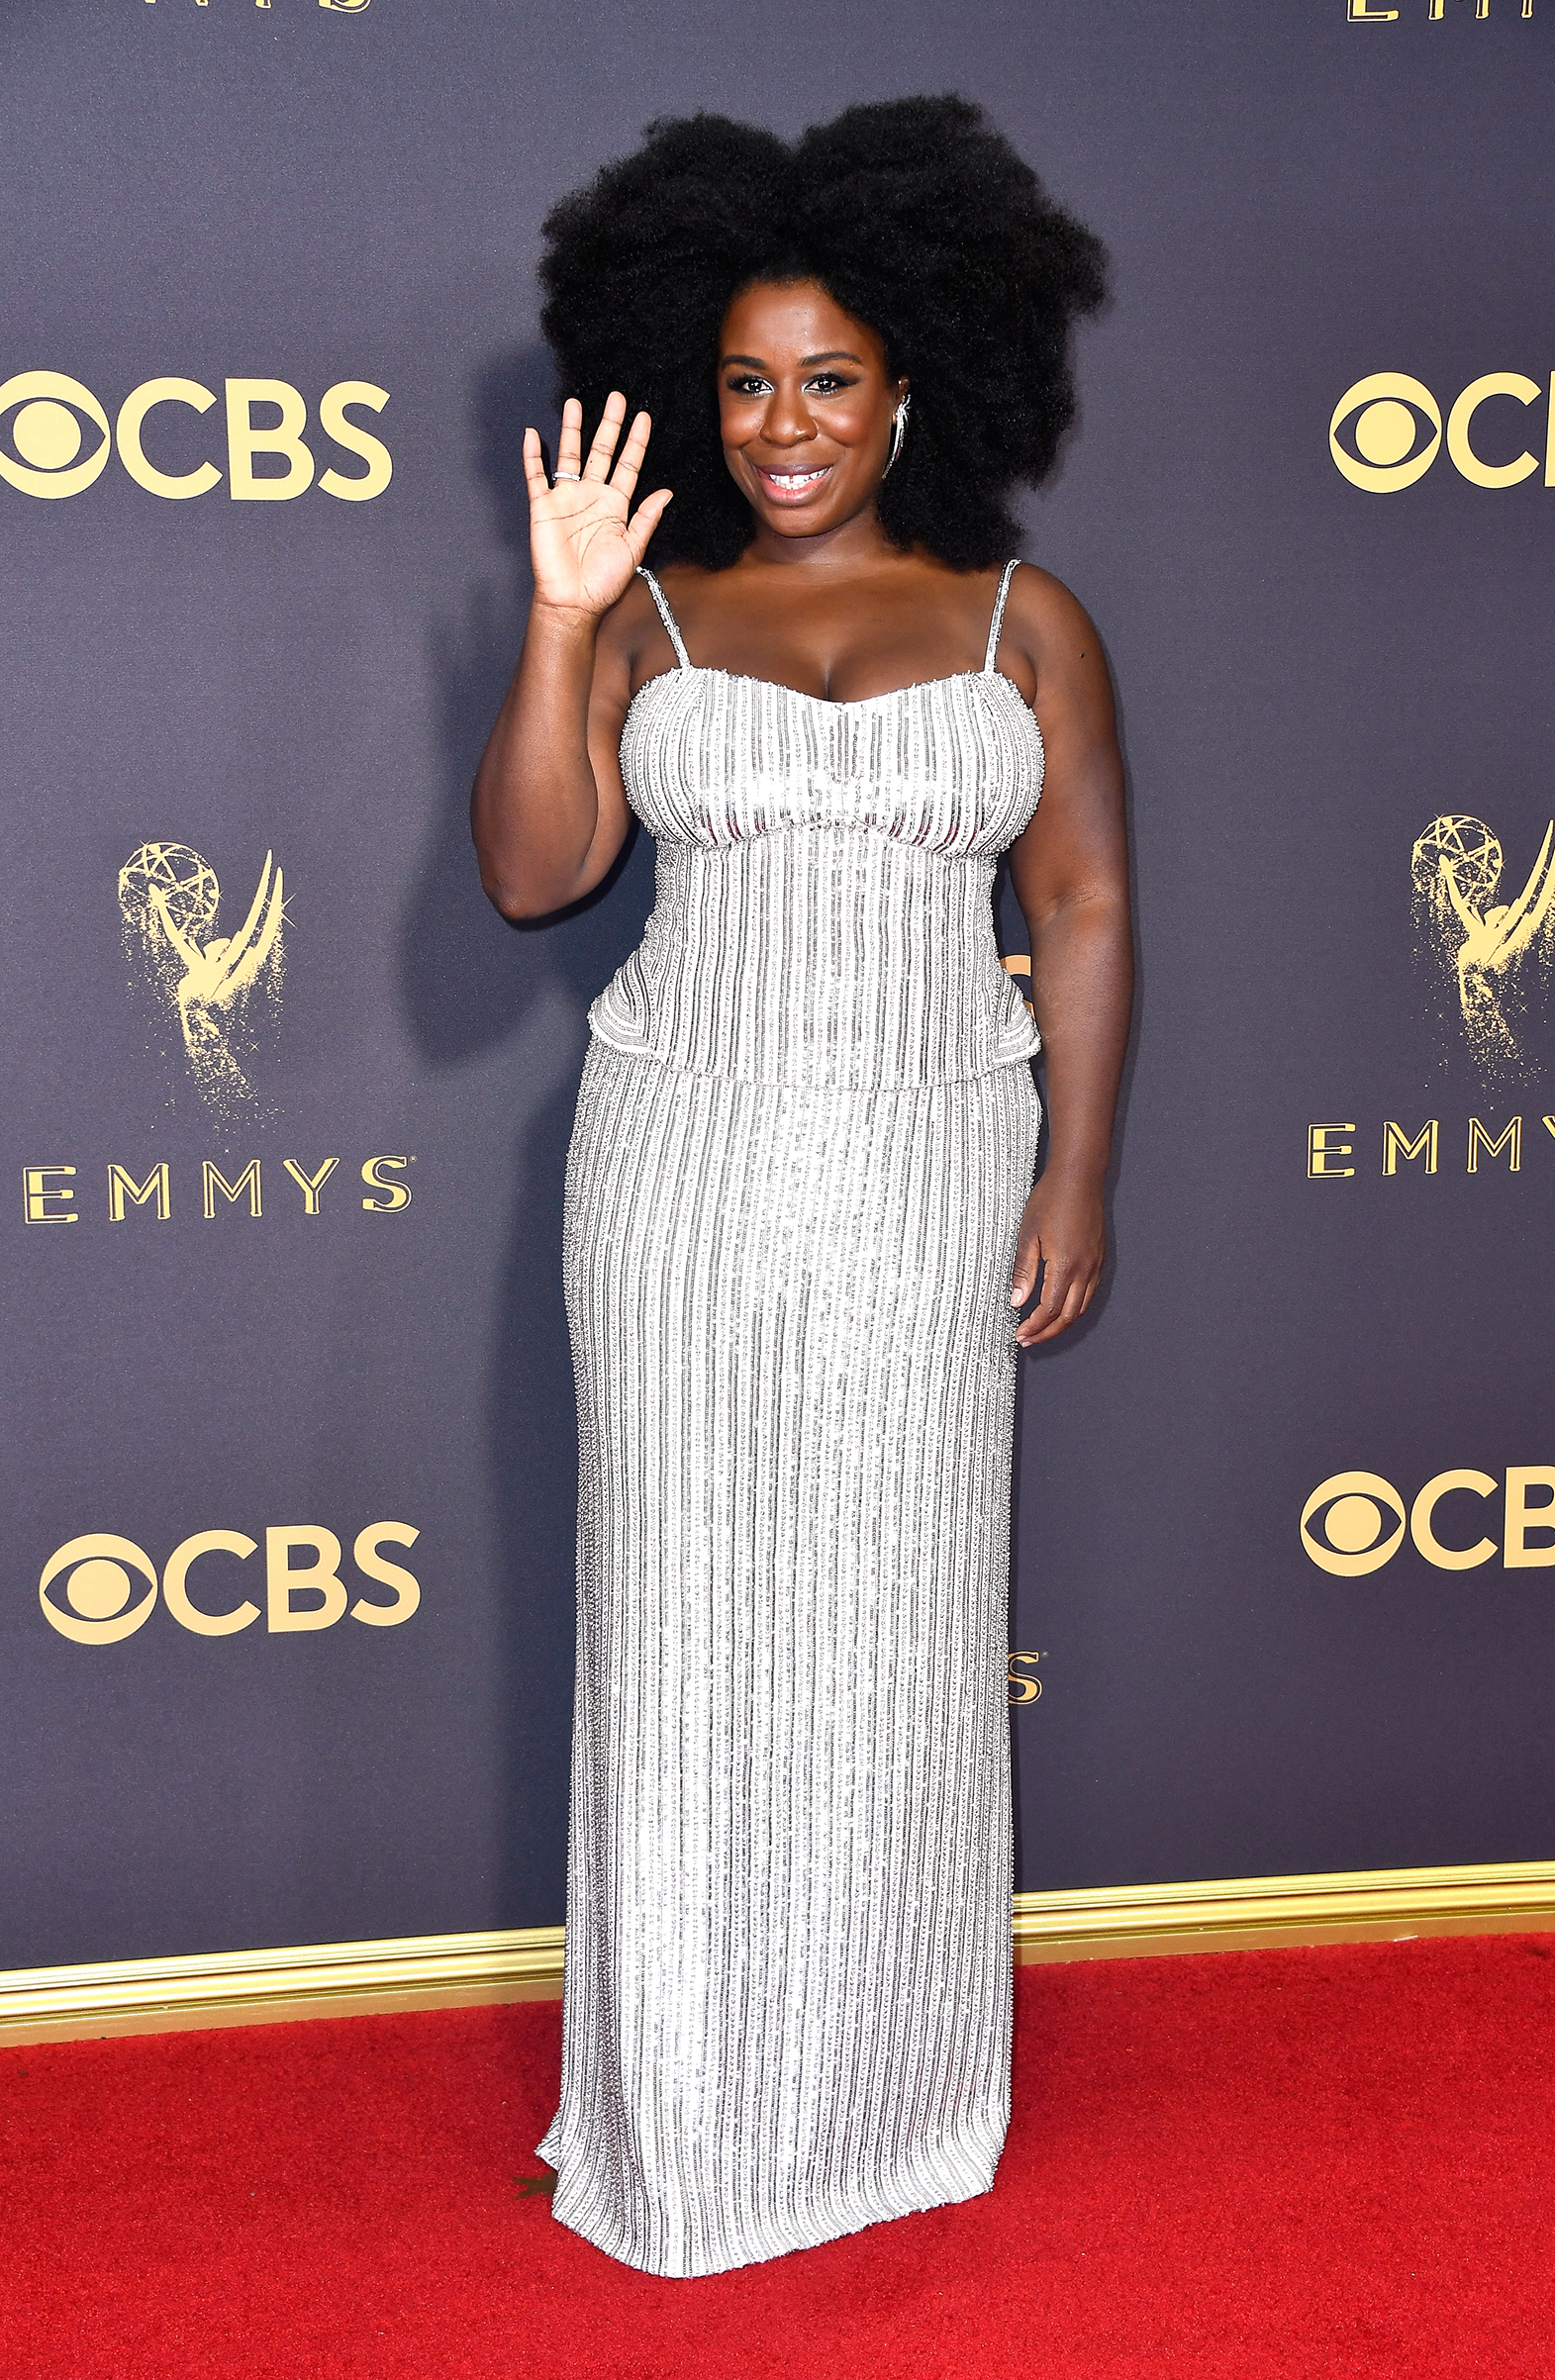 Actor Uzo Aduba attends the 69th Annual Primetime Emmy Awards at Microsoft Theater on September 17, 2017 in Los Angeles, California.